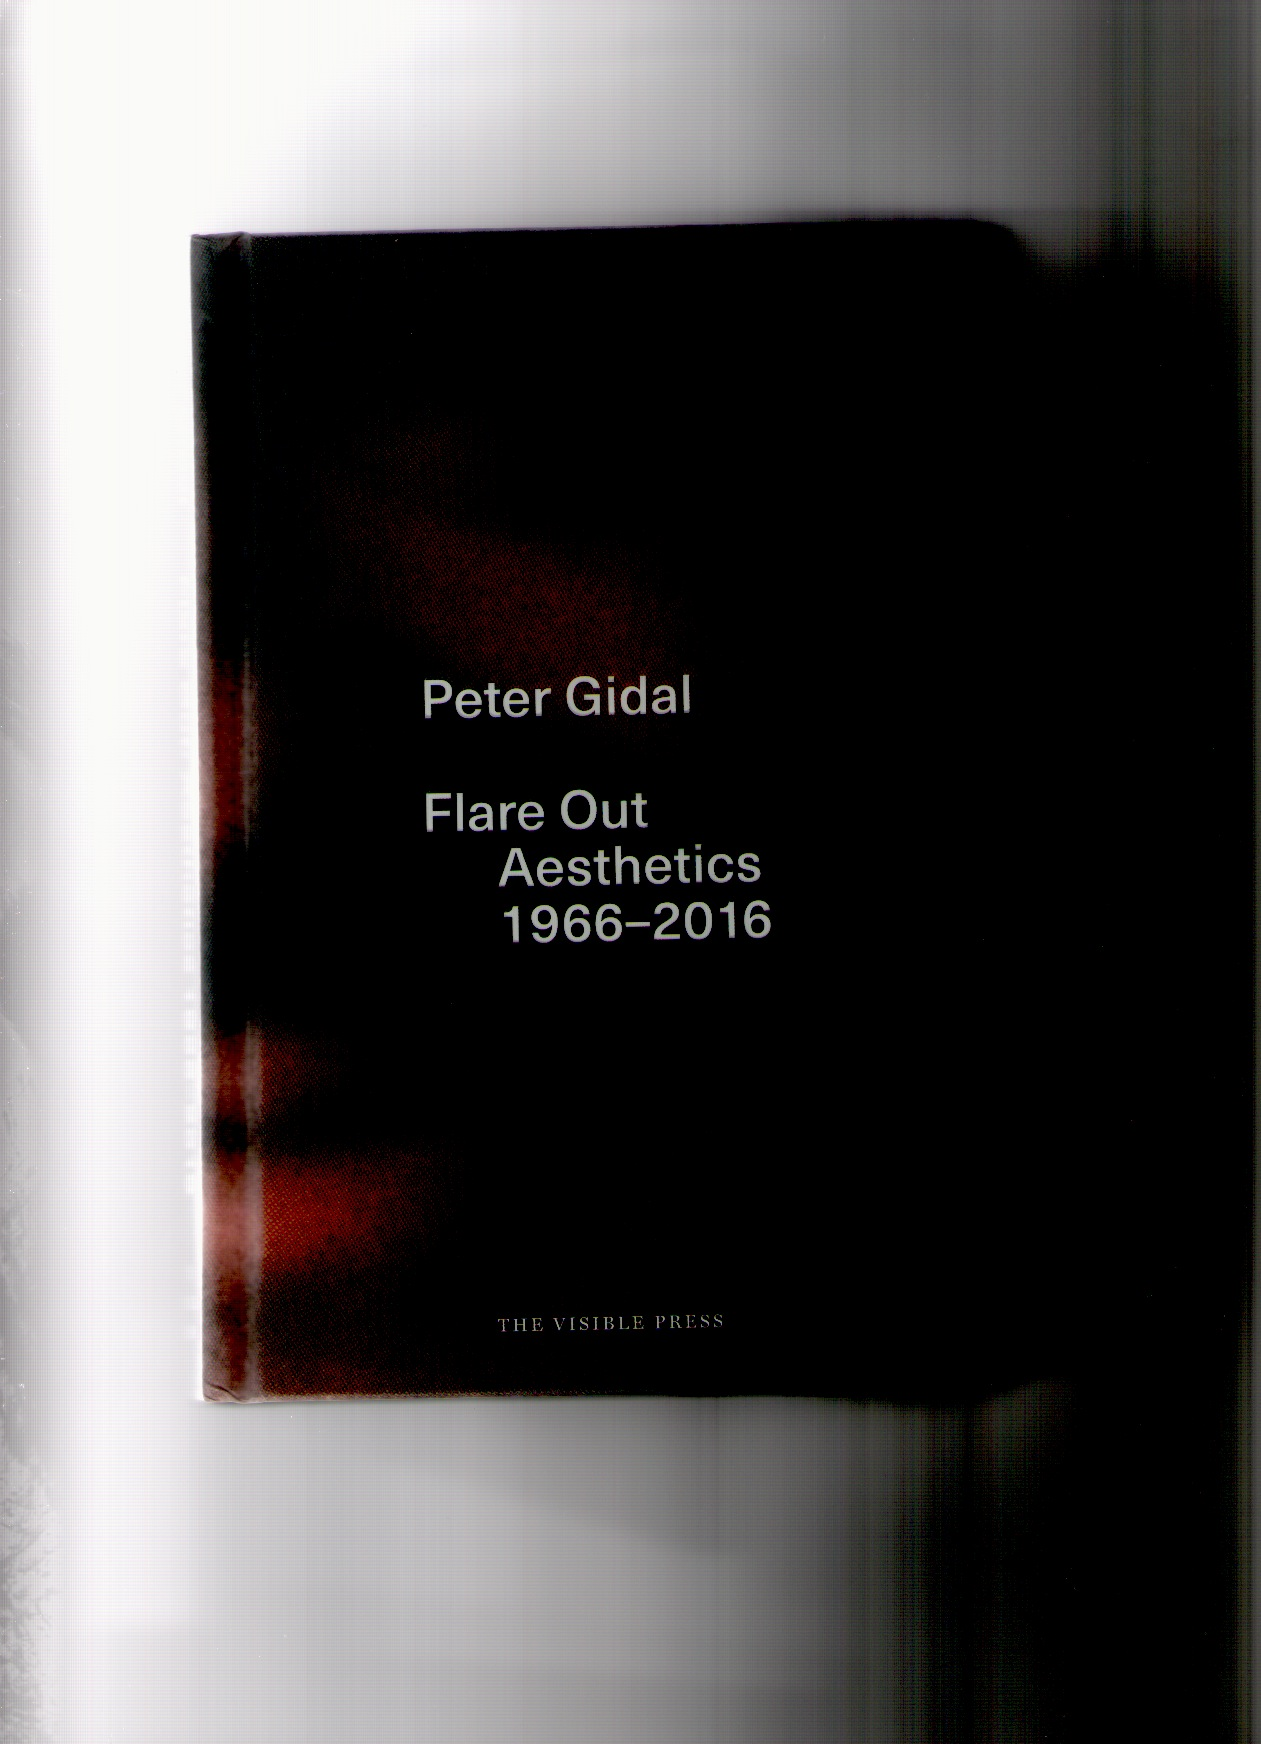 GIDAL, Peter - Flare Out Aesthetics 1966-2016